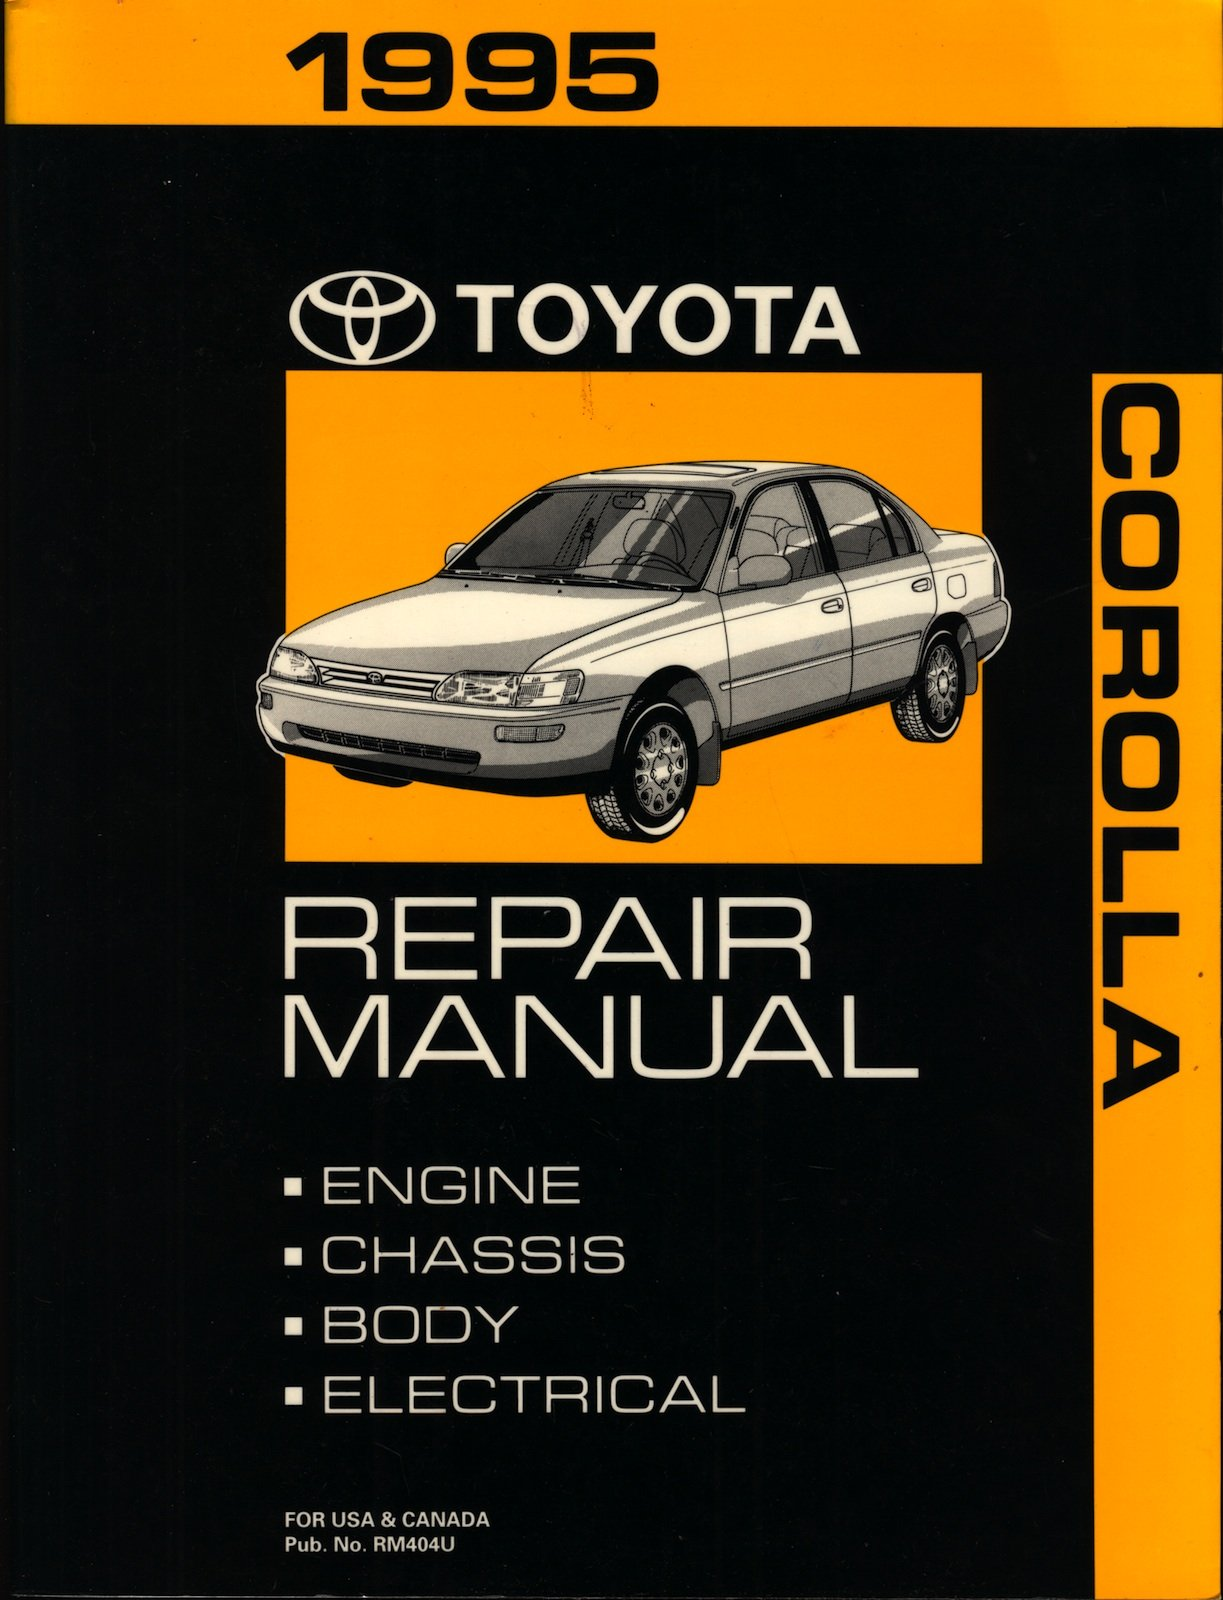 1995 Toyota Corolla Repair Manual Toyota Amazoncom Books